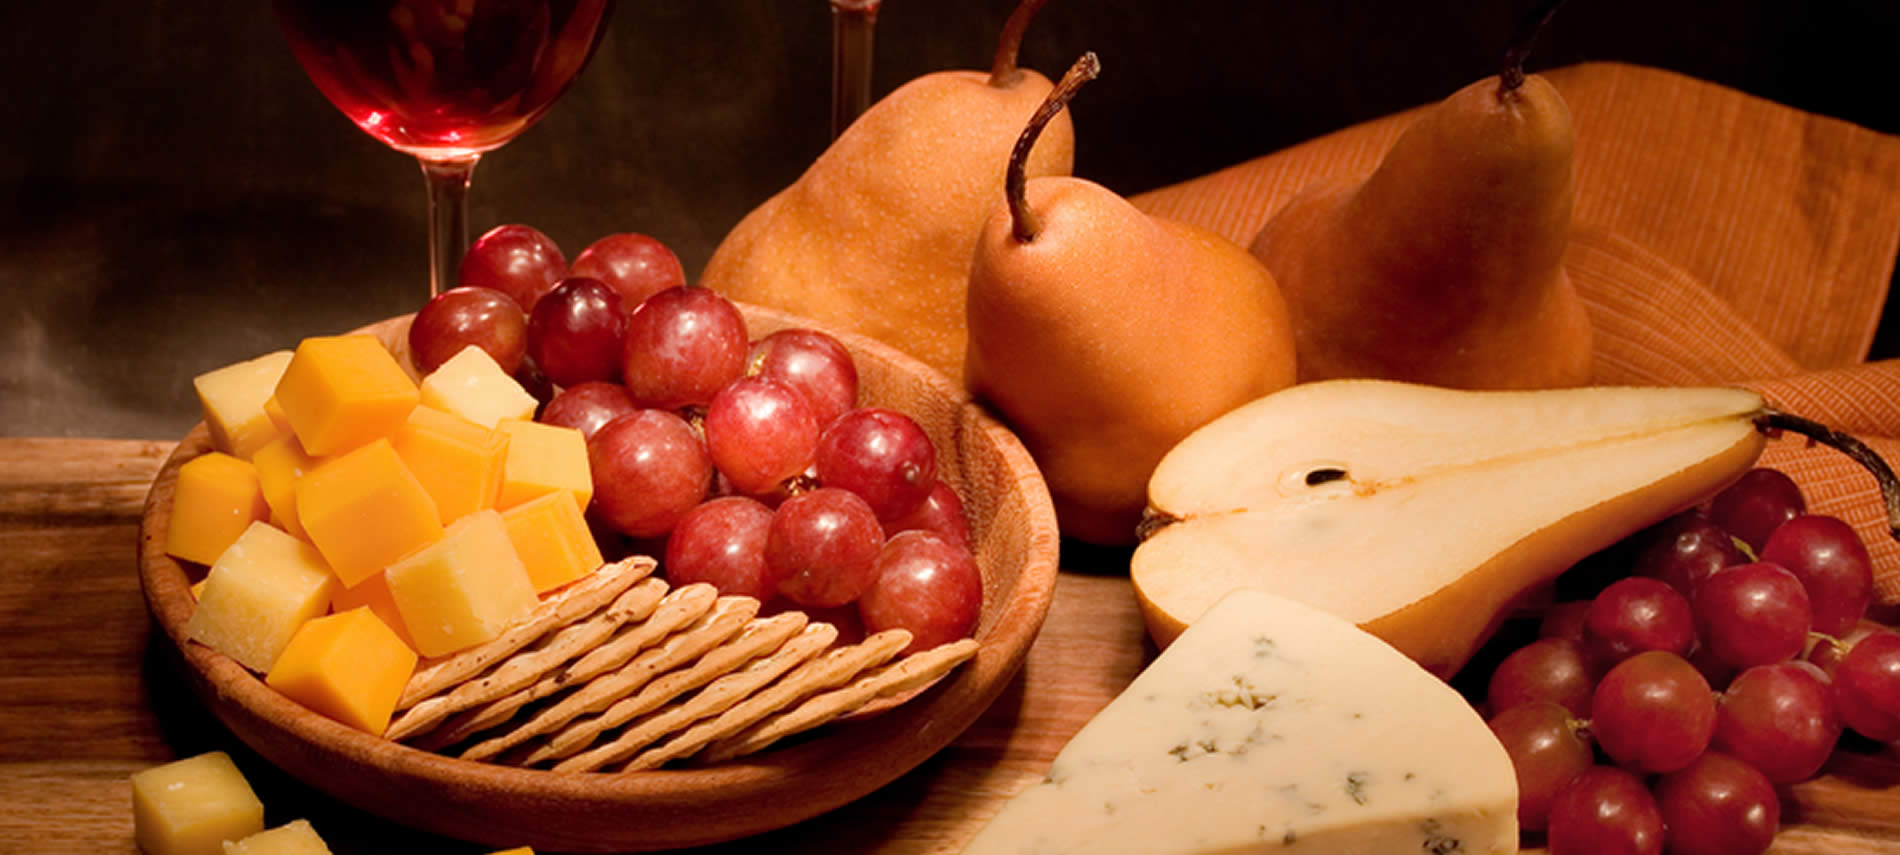 Table topped with sliced pears, aged cheese, red grapes, and a wooden bowl of crackers, cheese and grapes